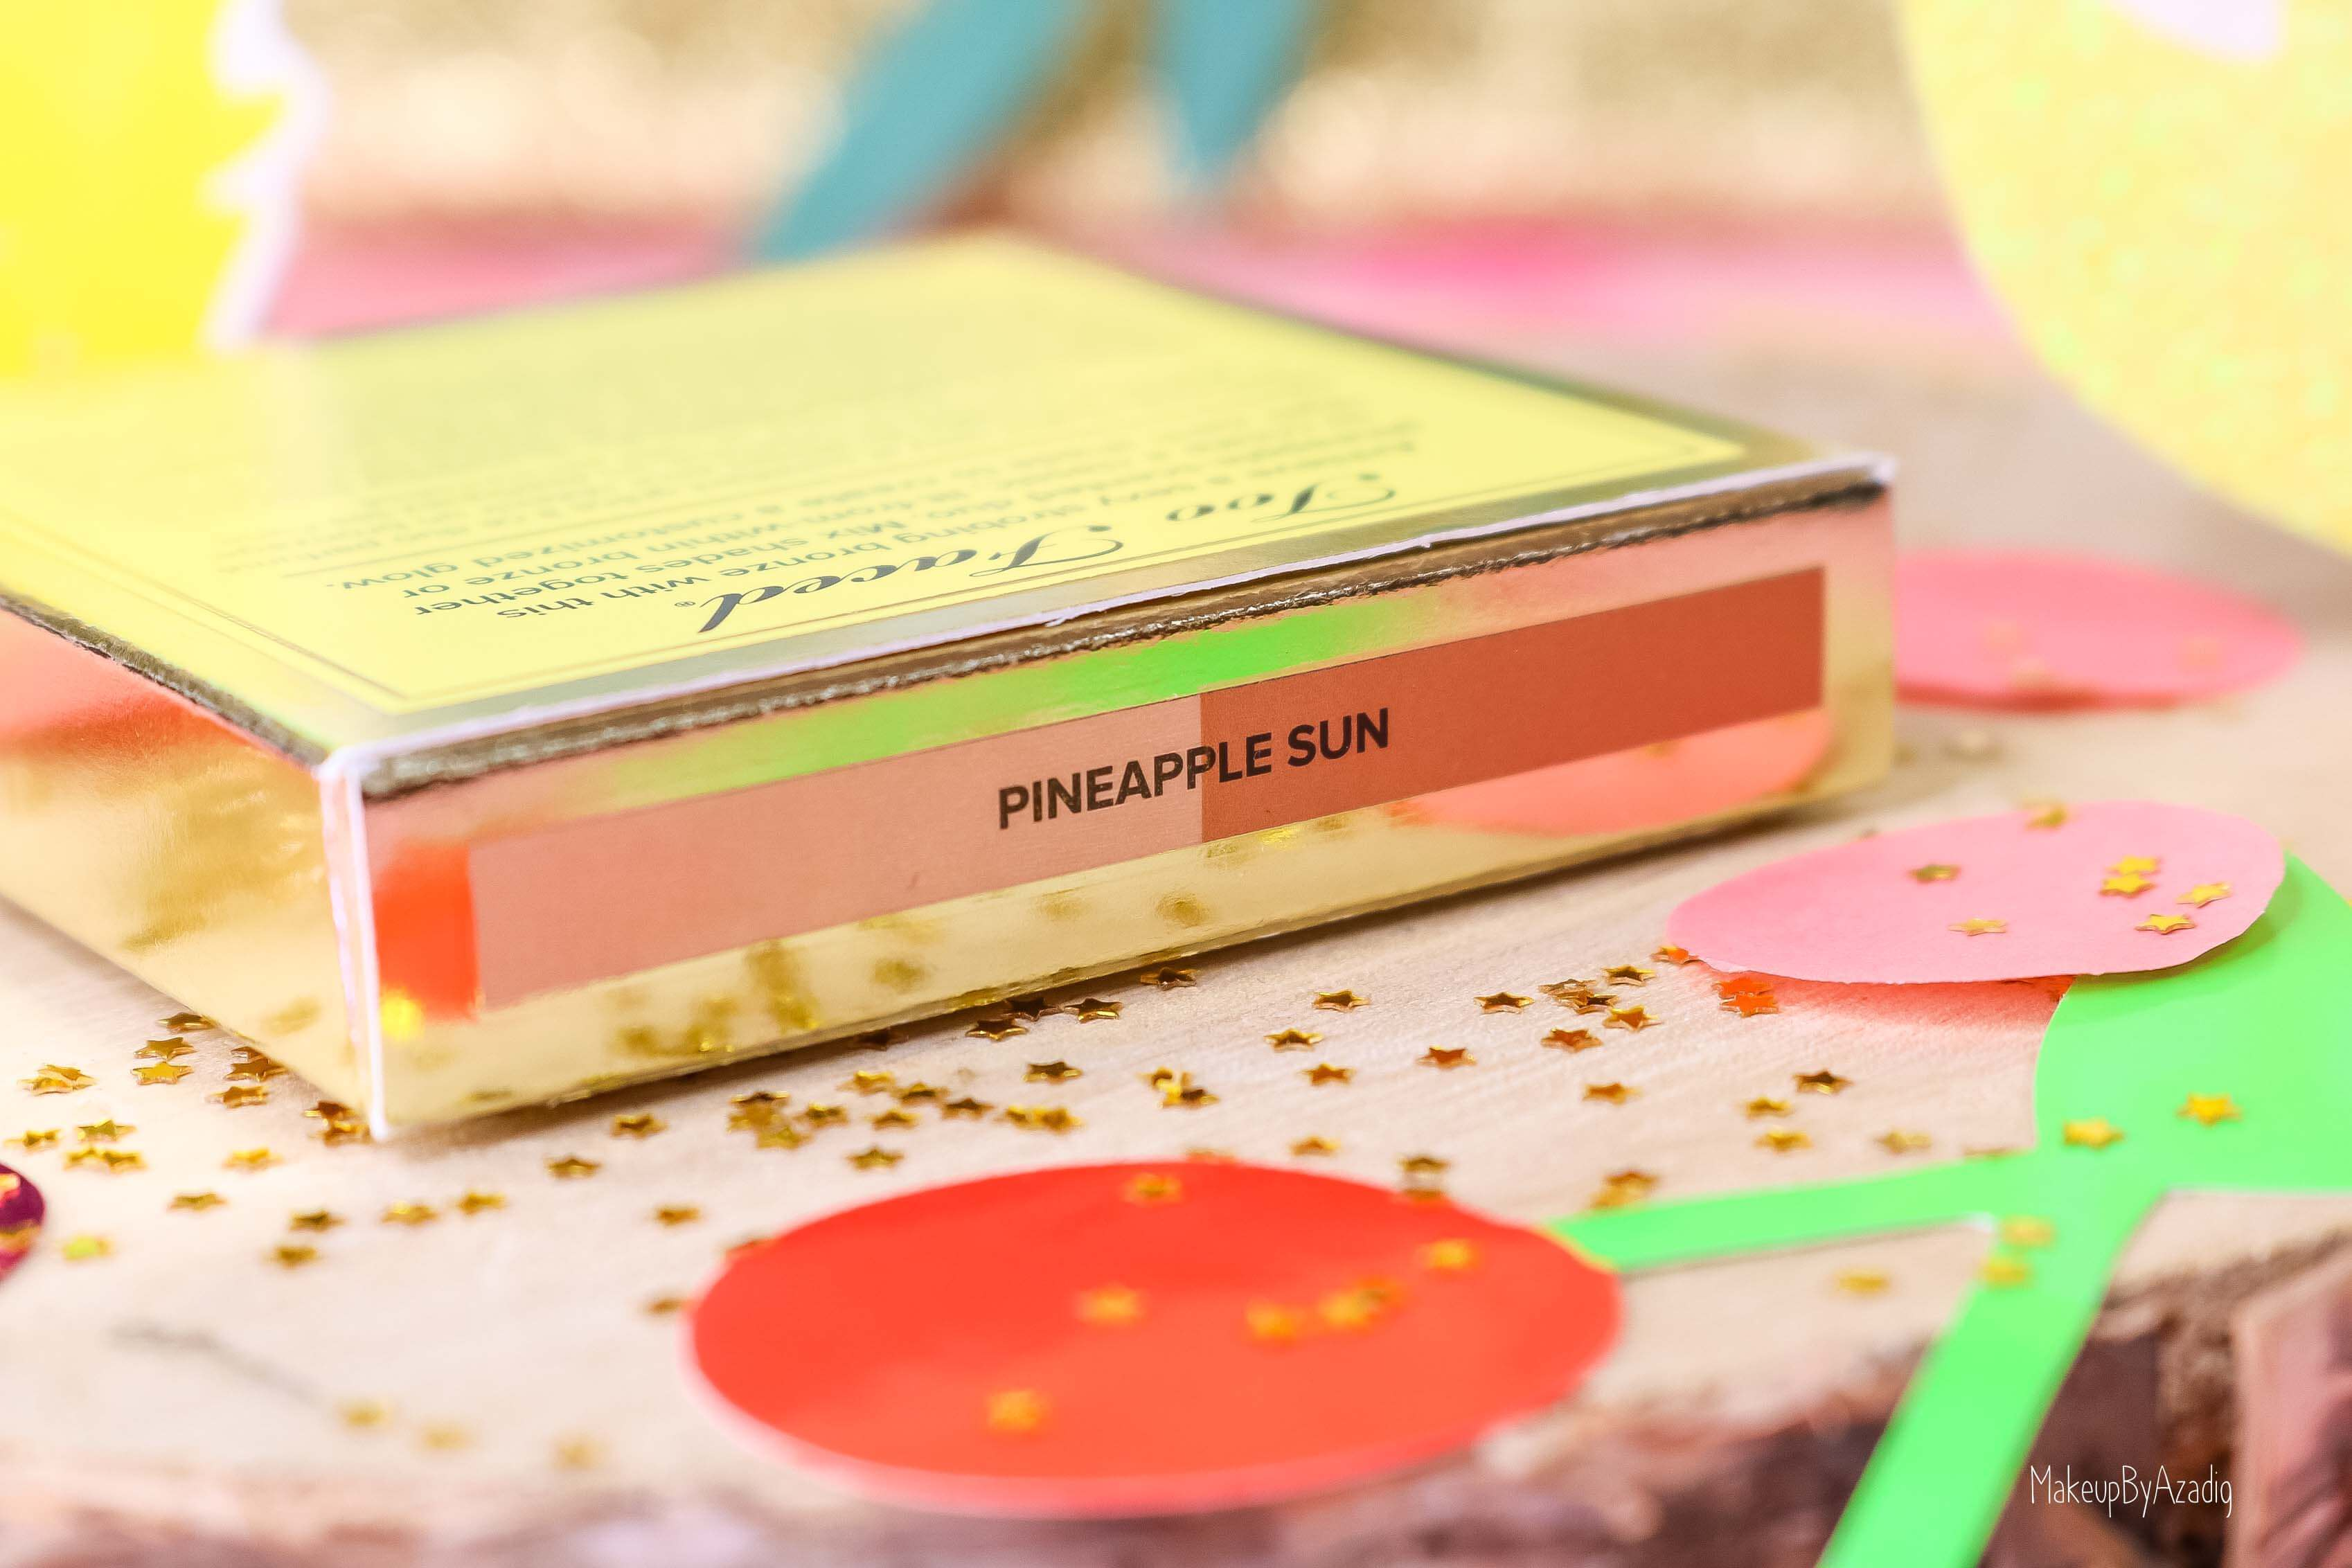 revue-collection-tutti-frutti-too-faced-bronzeur-highlighter-pineapple-paradise-sun-sephora-france-makeupbyazadig-swatch-avis-prix-ananas-ete